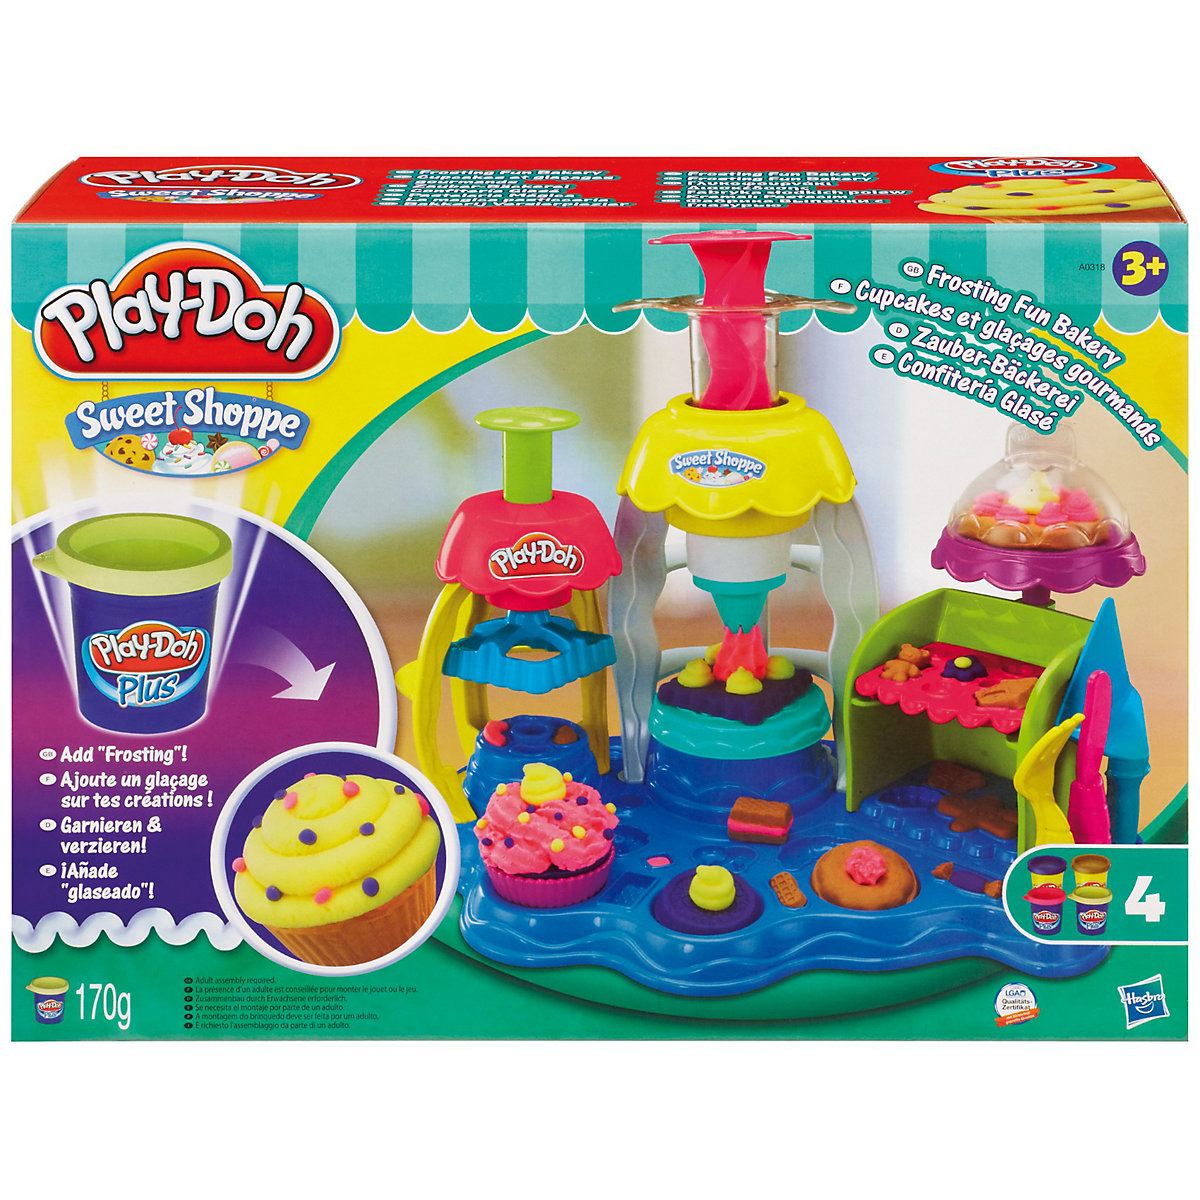 Modeling Clay Slime HASBRO 2599575 Children creative set Toy Toys Game Games Kids Baby boys  Stationery Lizun Play-Doh MTpromo creative stationery box stationery kit stationery box for primary school children and children s children s kindergarten